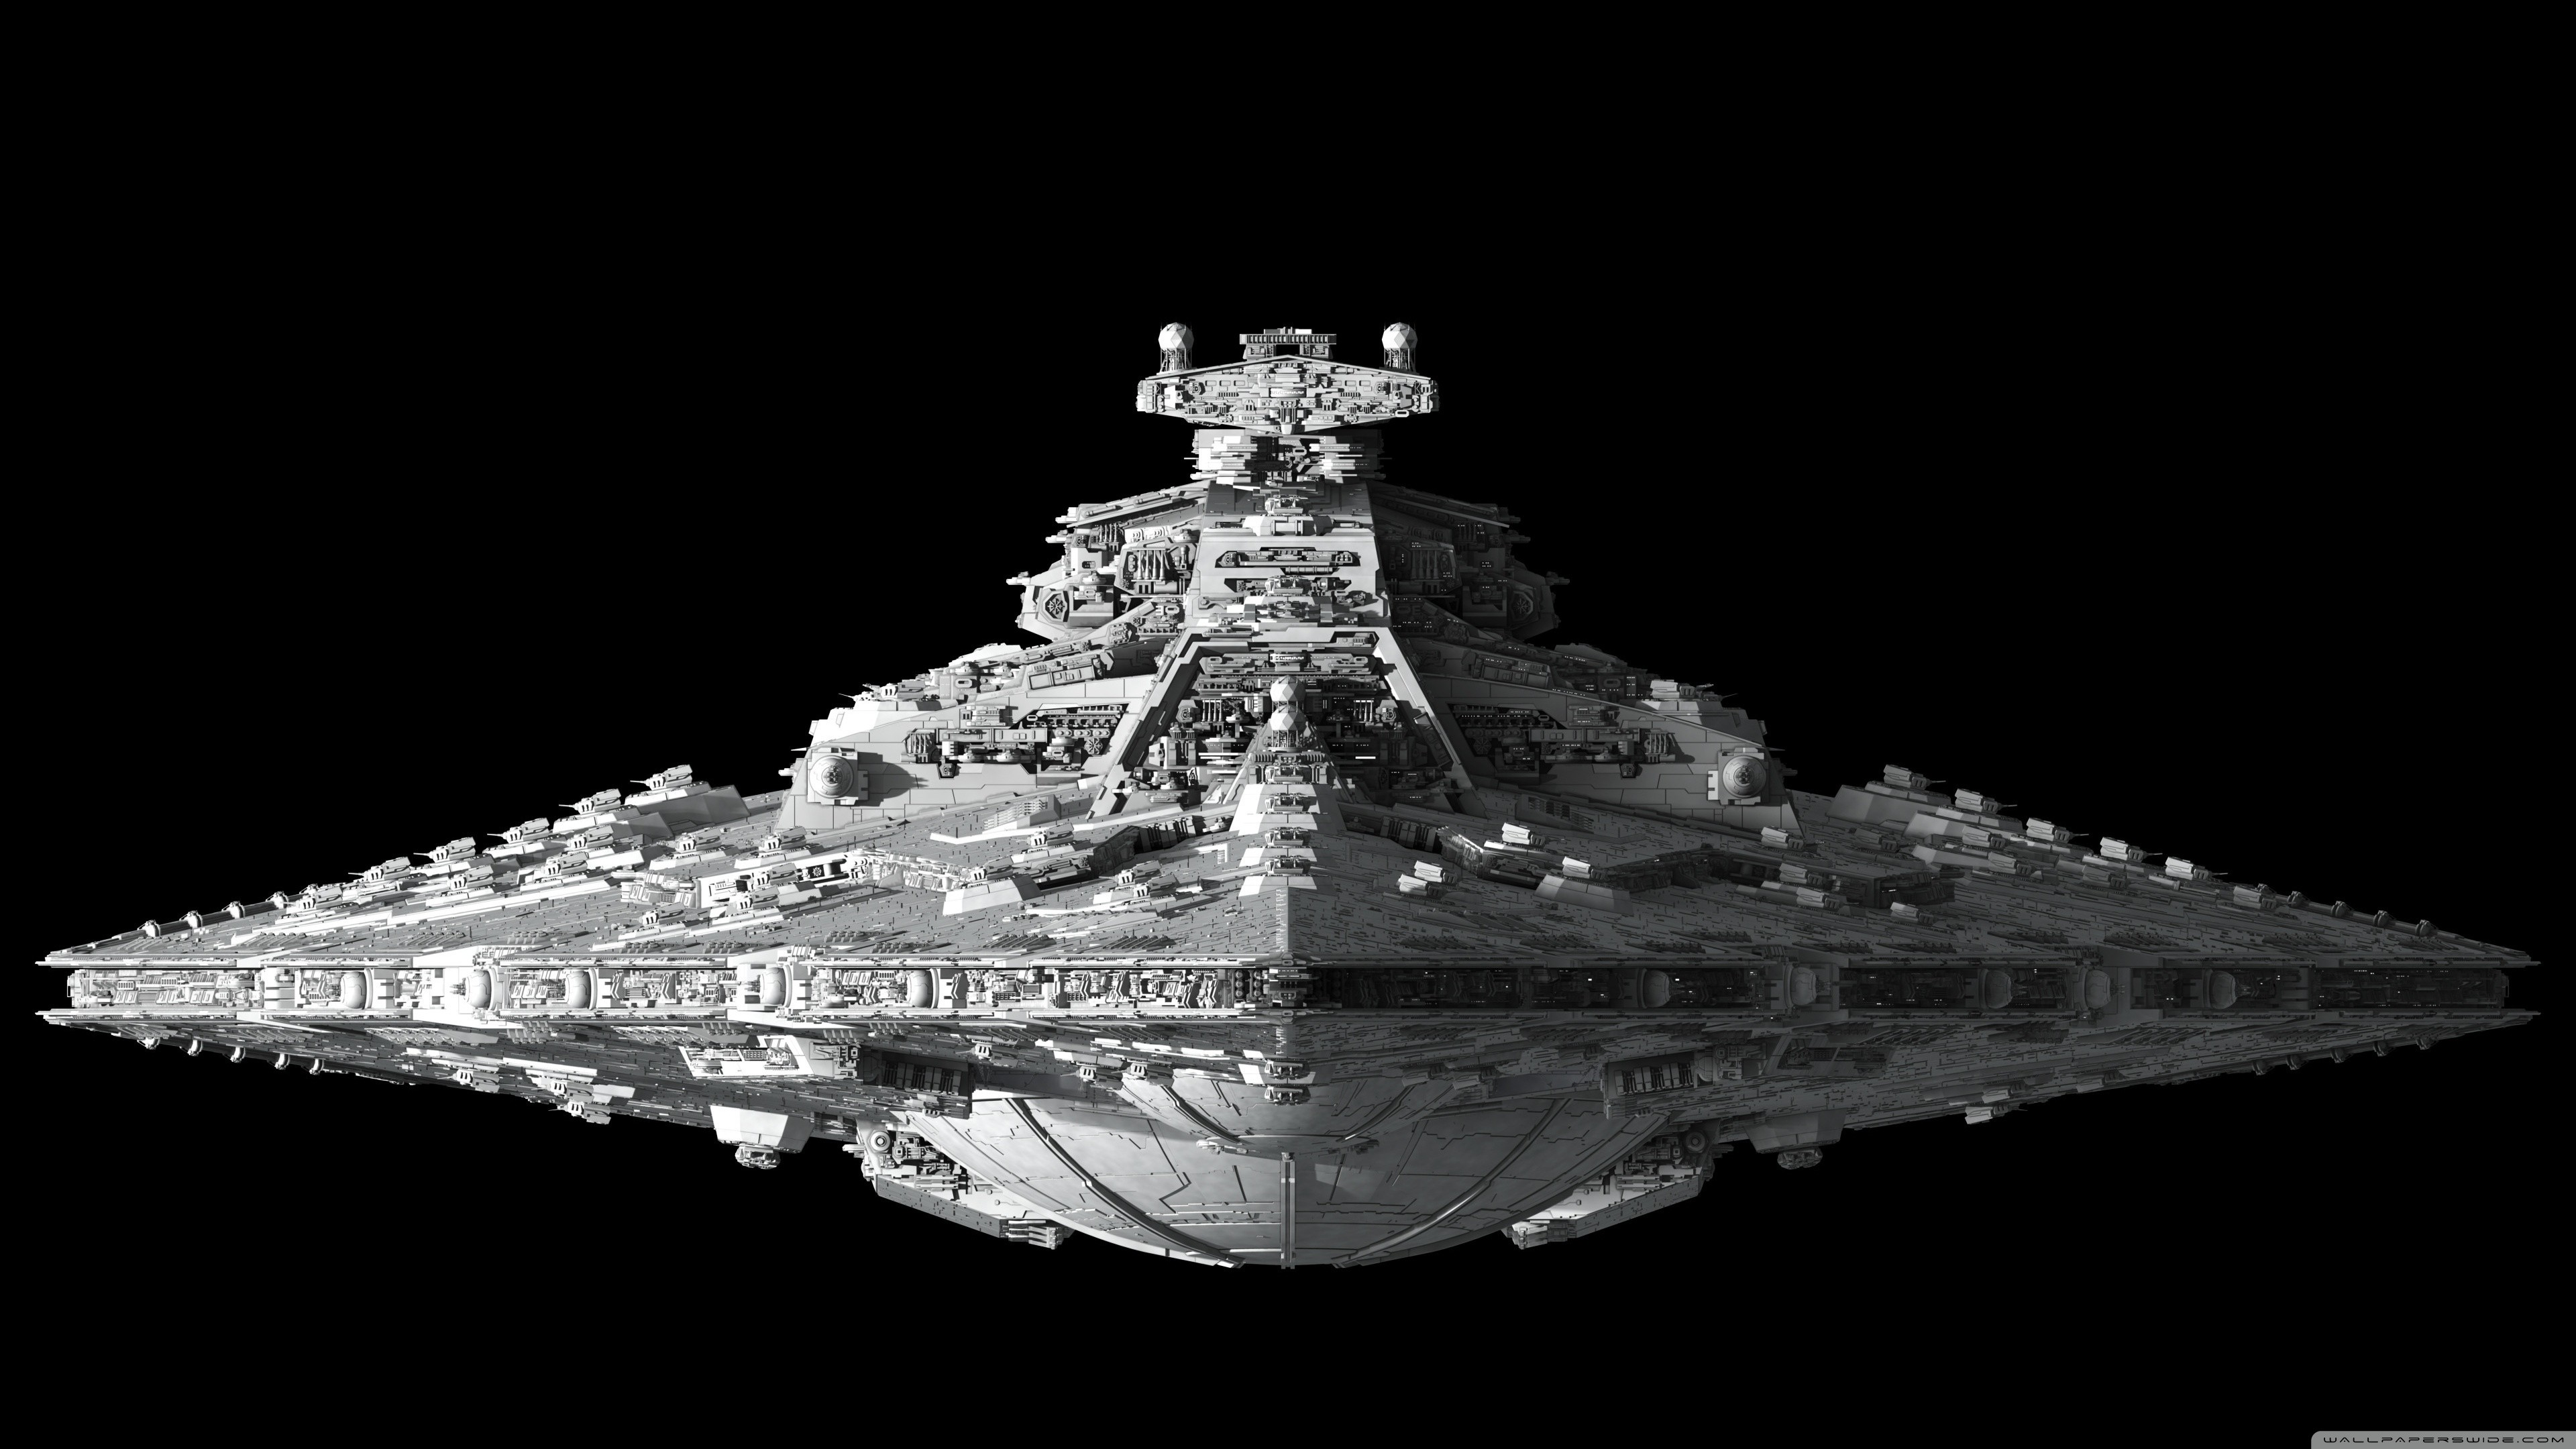 Star Wars digital art modeling Star Destroyer Free HQ and widescreen  wallpapers